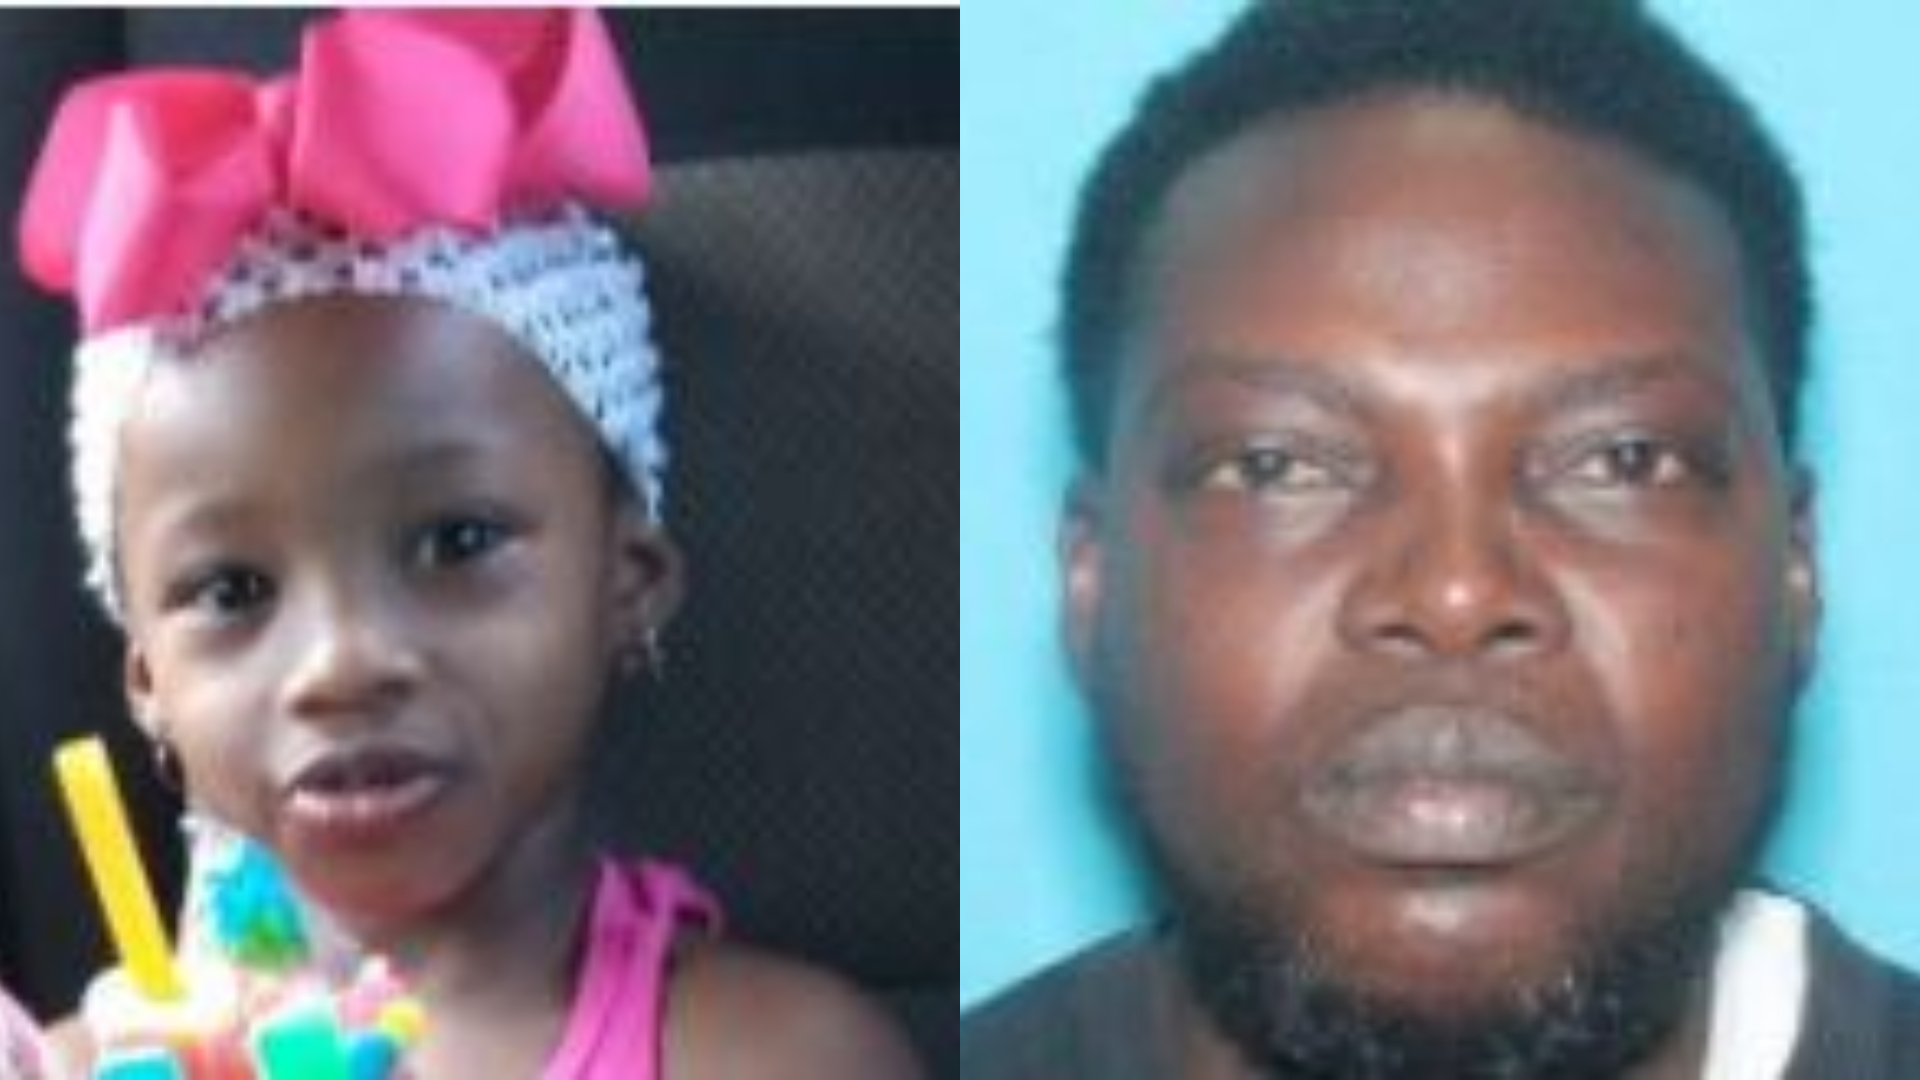 Update Amber Alert Issued For Missing Texas Girl Discontinued